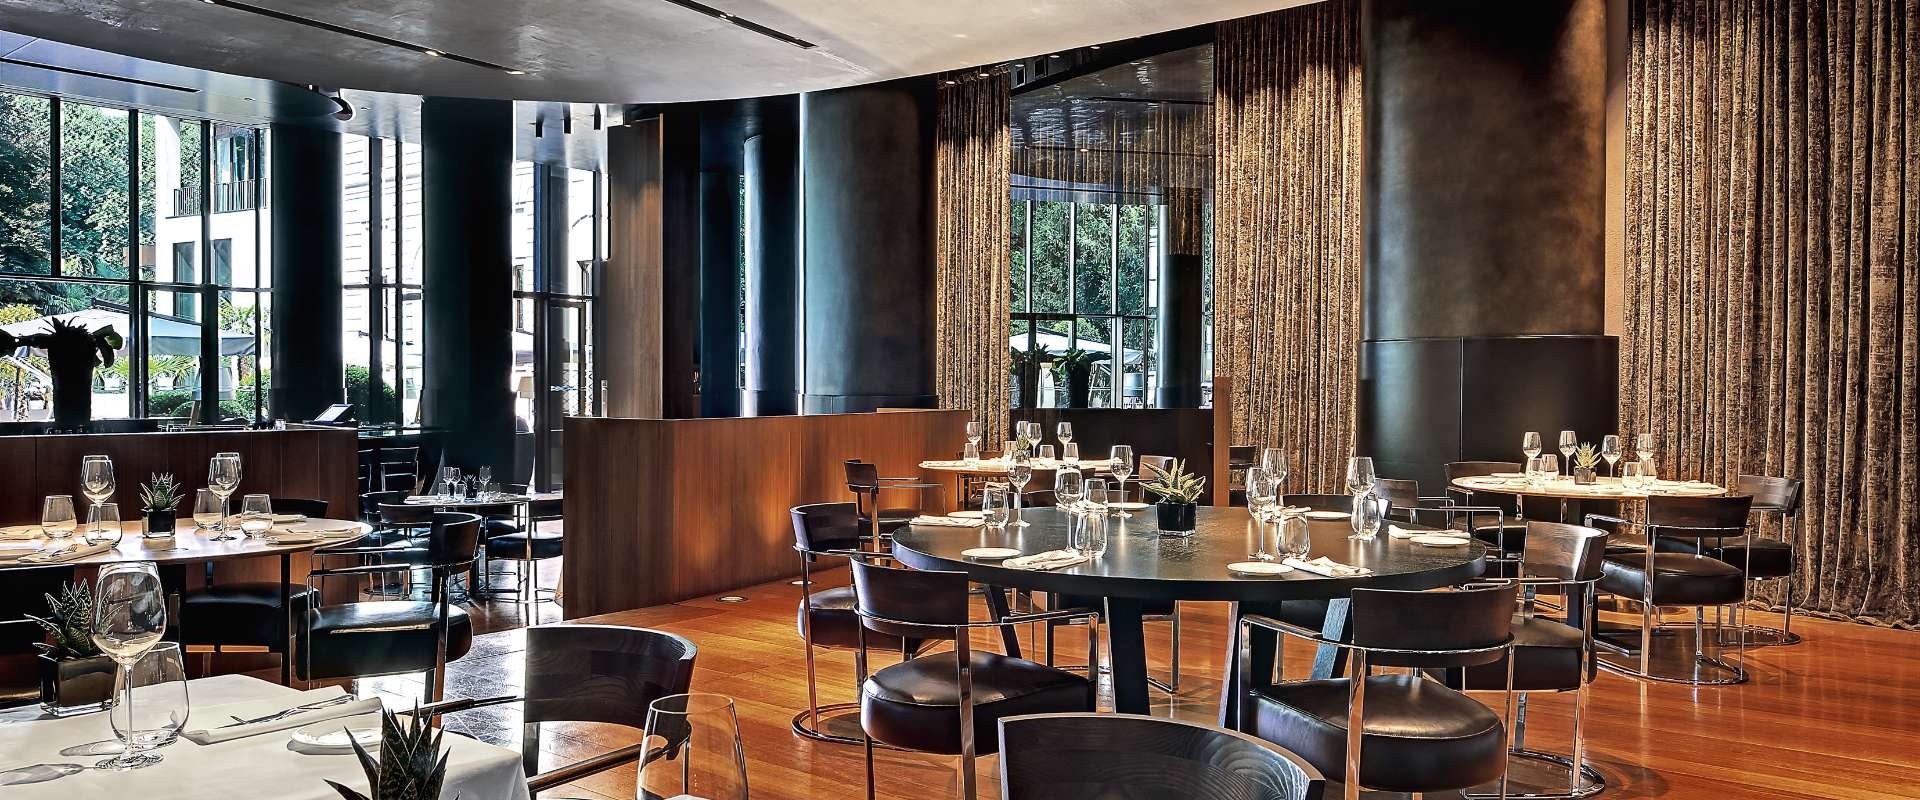 Top Luxury Dining Rooms in Milano's Hotels